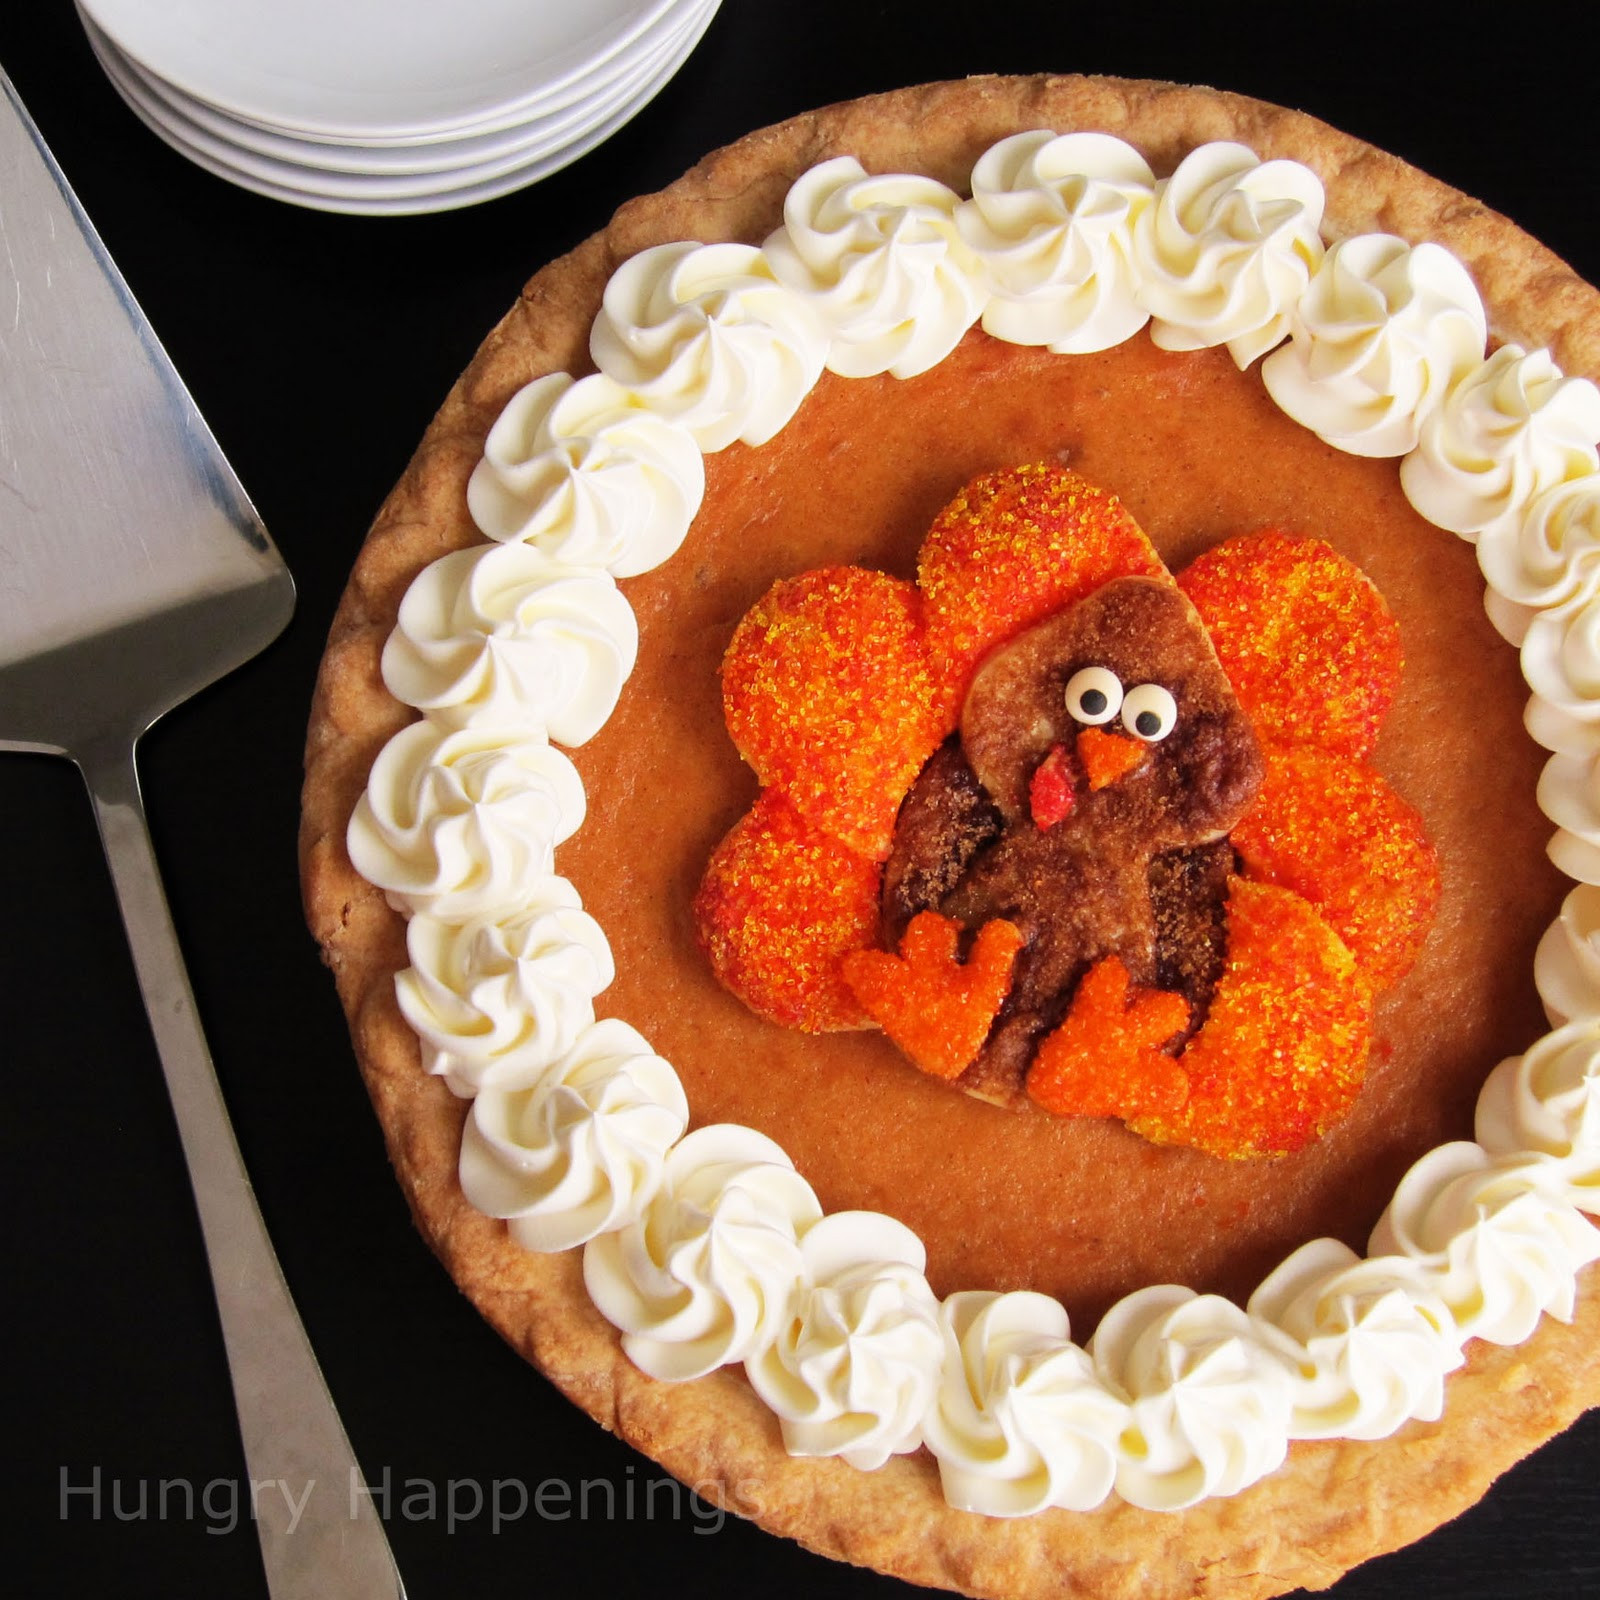 Pies To Make For Thanksgiving  Decorated Pumpkin Pie Festive Thanksgiving Dessert